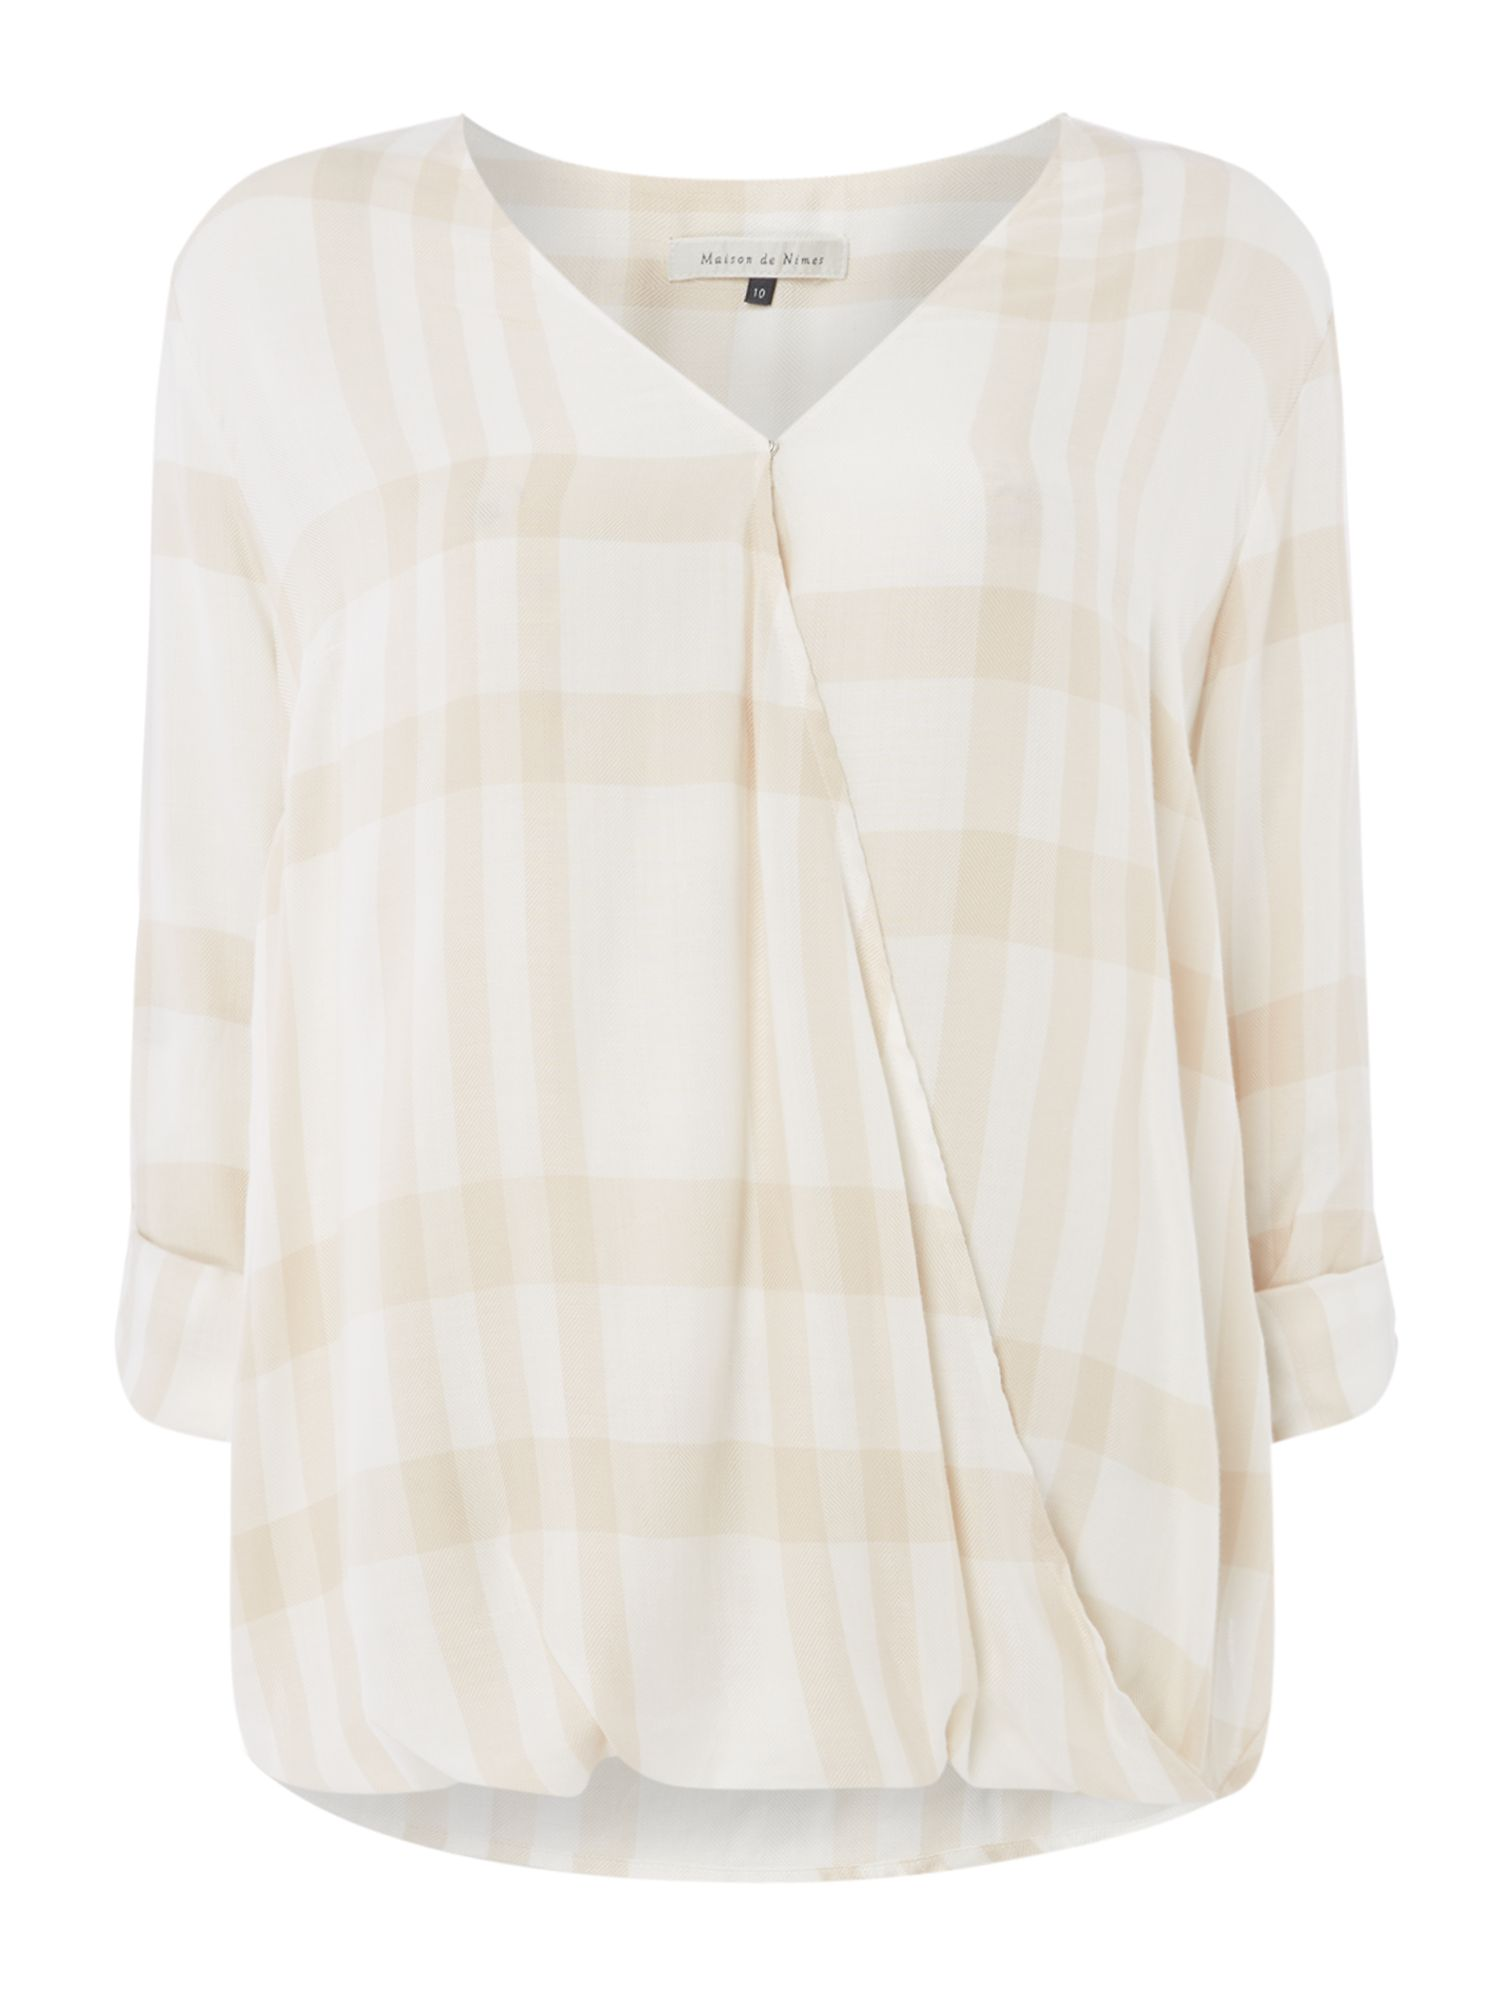 Maison De Nimes Oak Check Wrap Shirt, Neutral